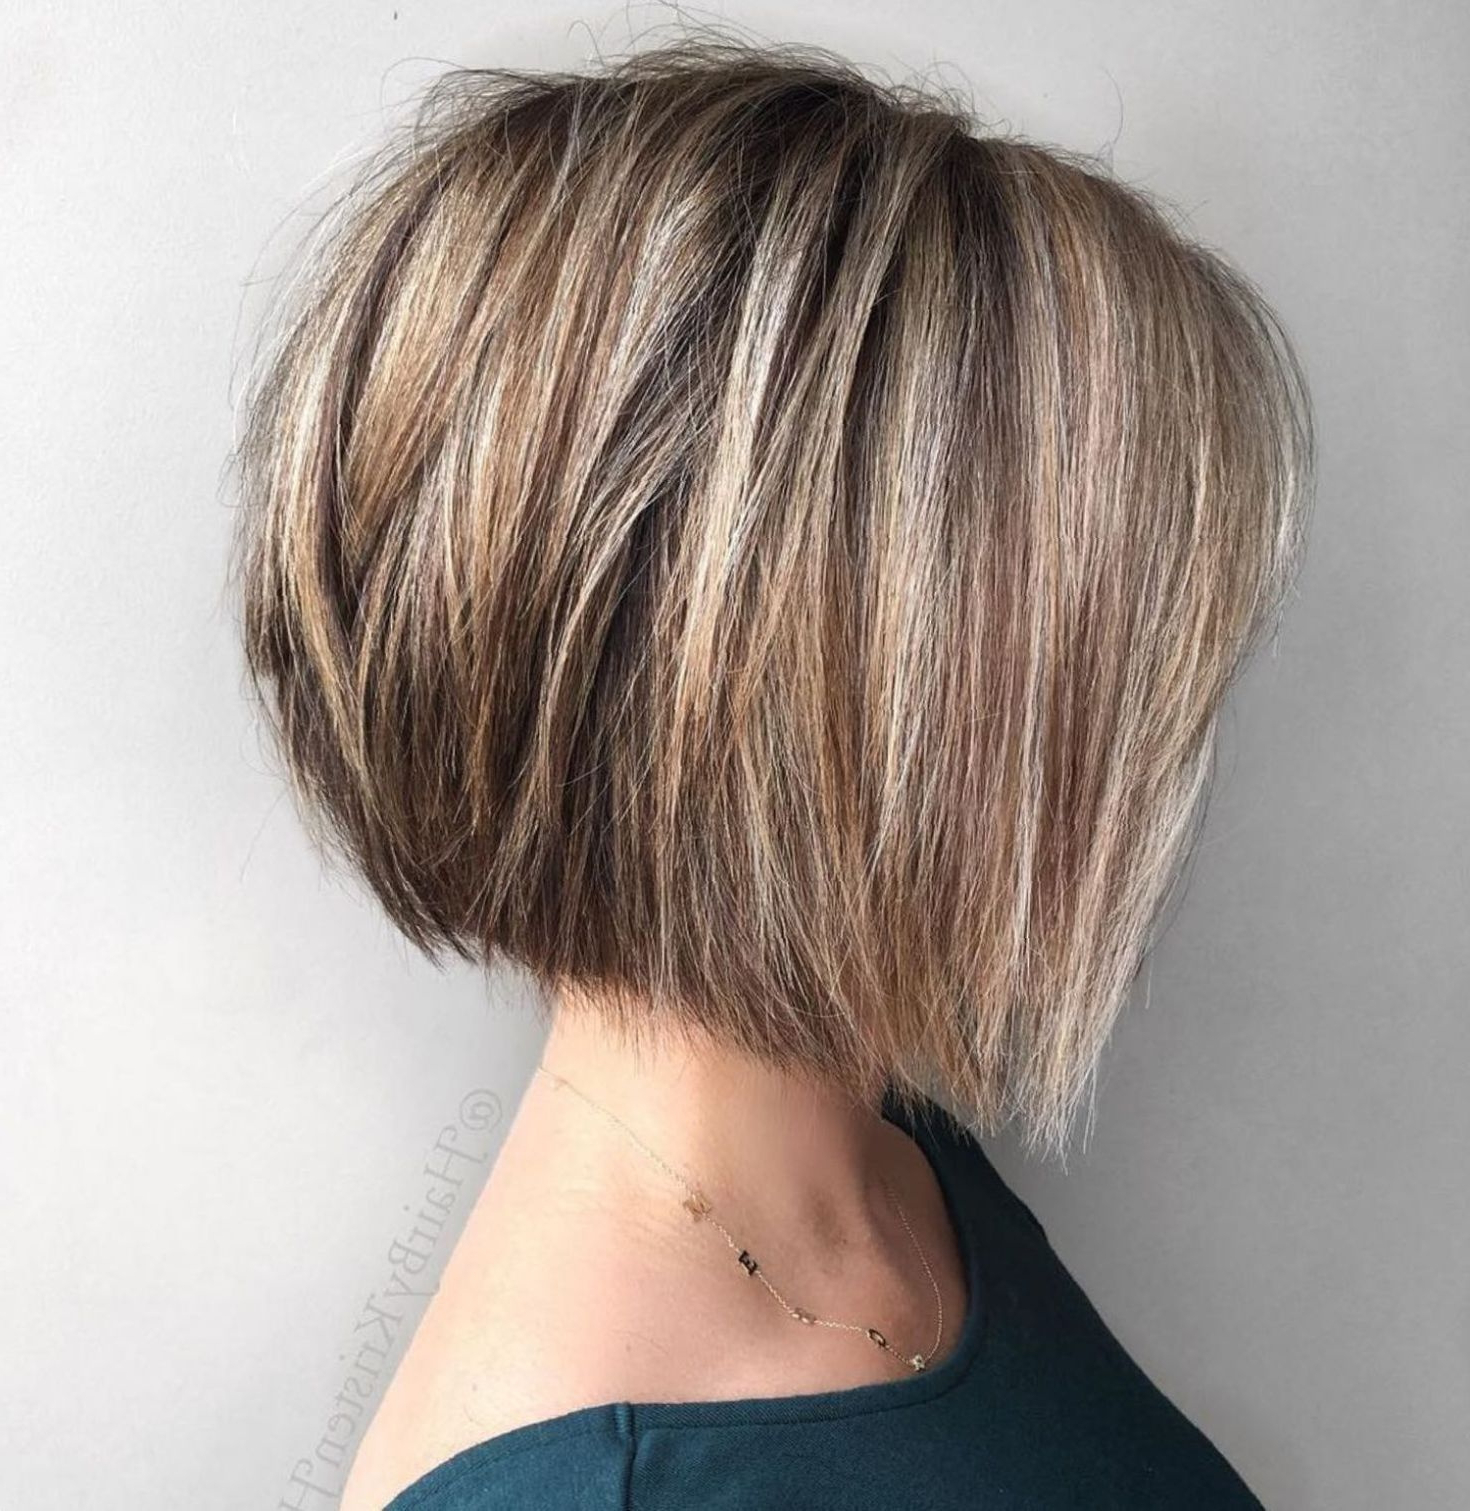 Wedding Ideas : Stacked Pixie Engaging 60 Classy Short Pertaining To Classy Pixie Haircuts (View 20 of 20)